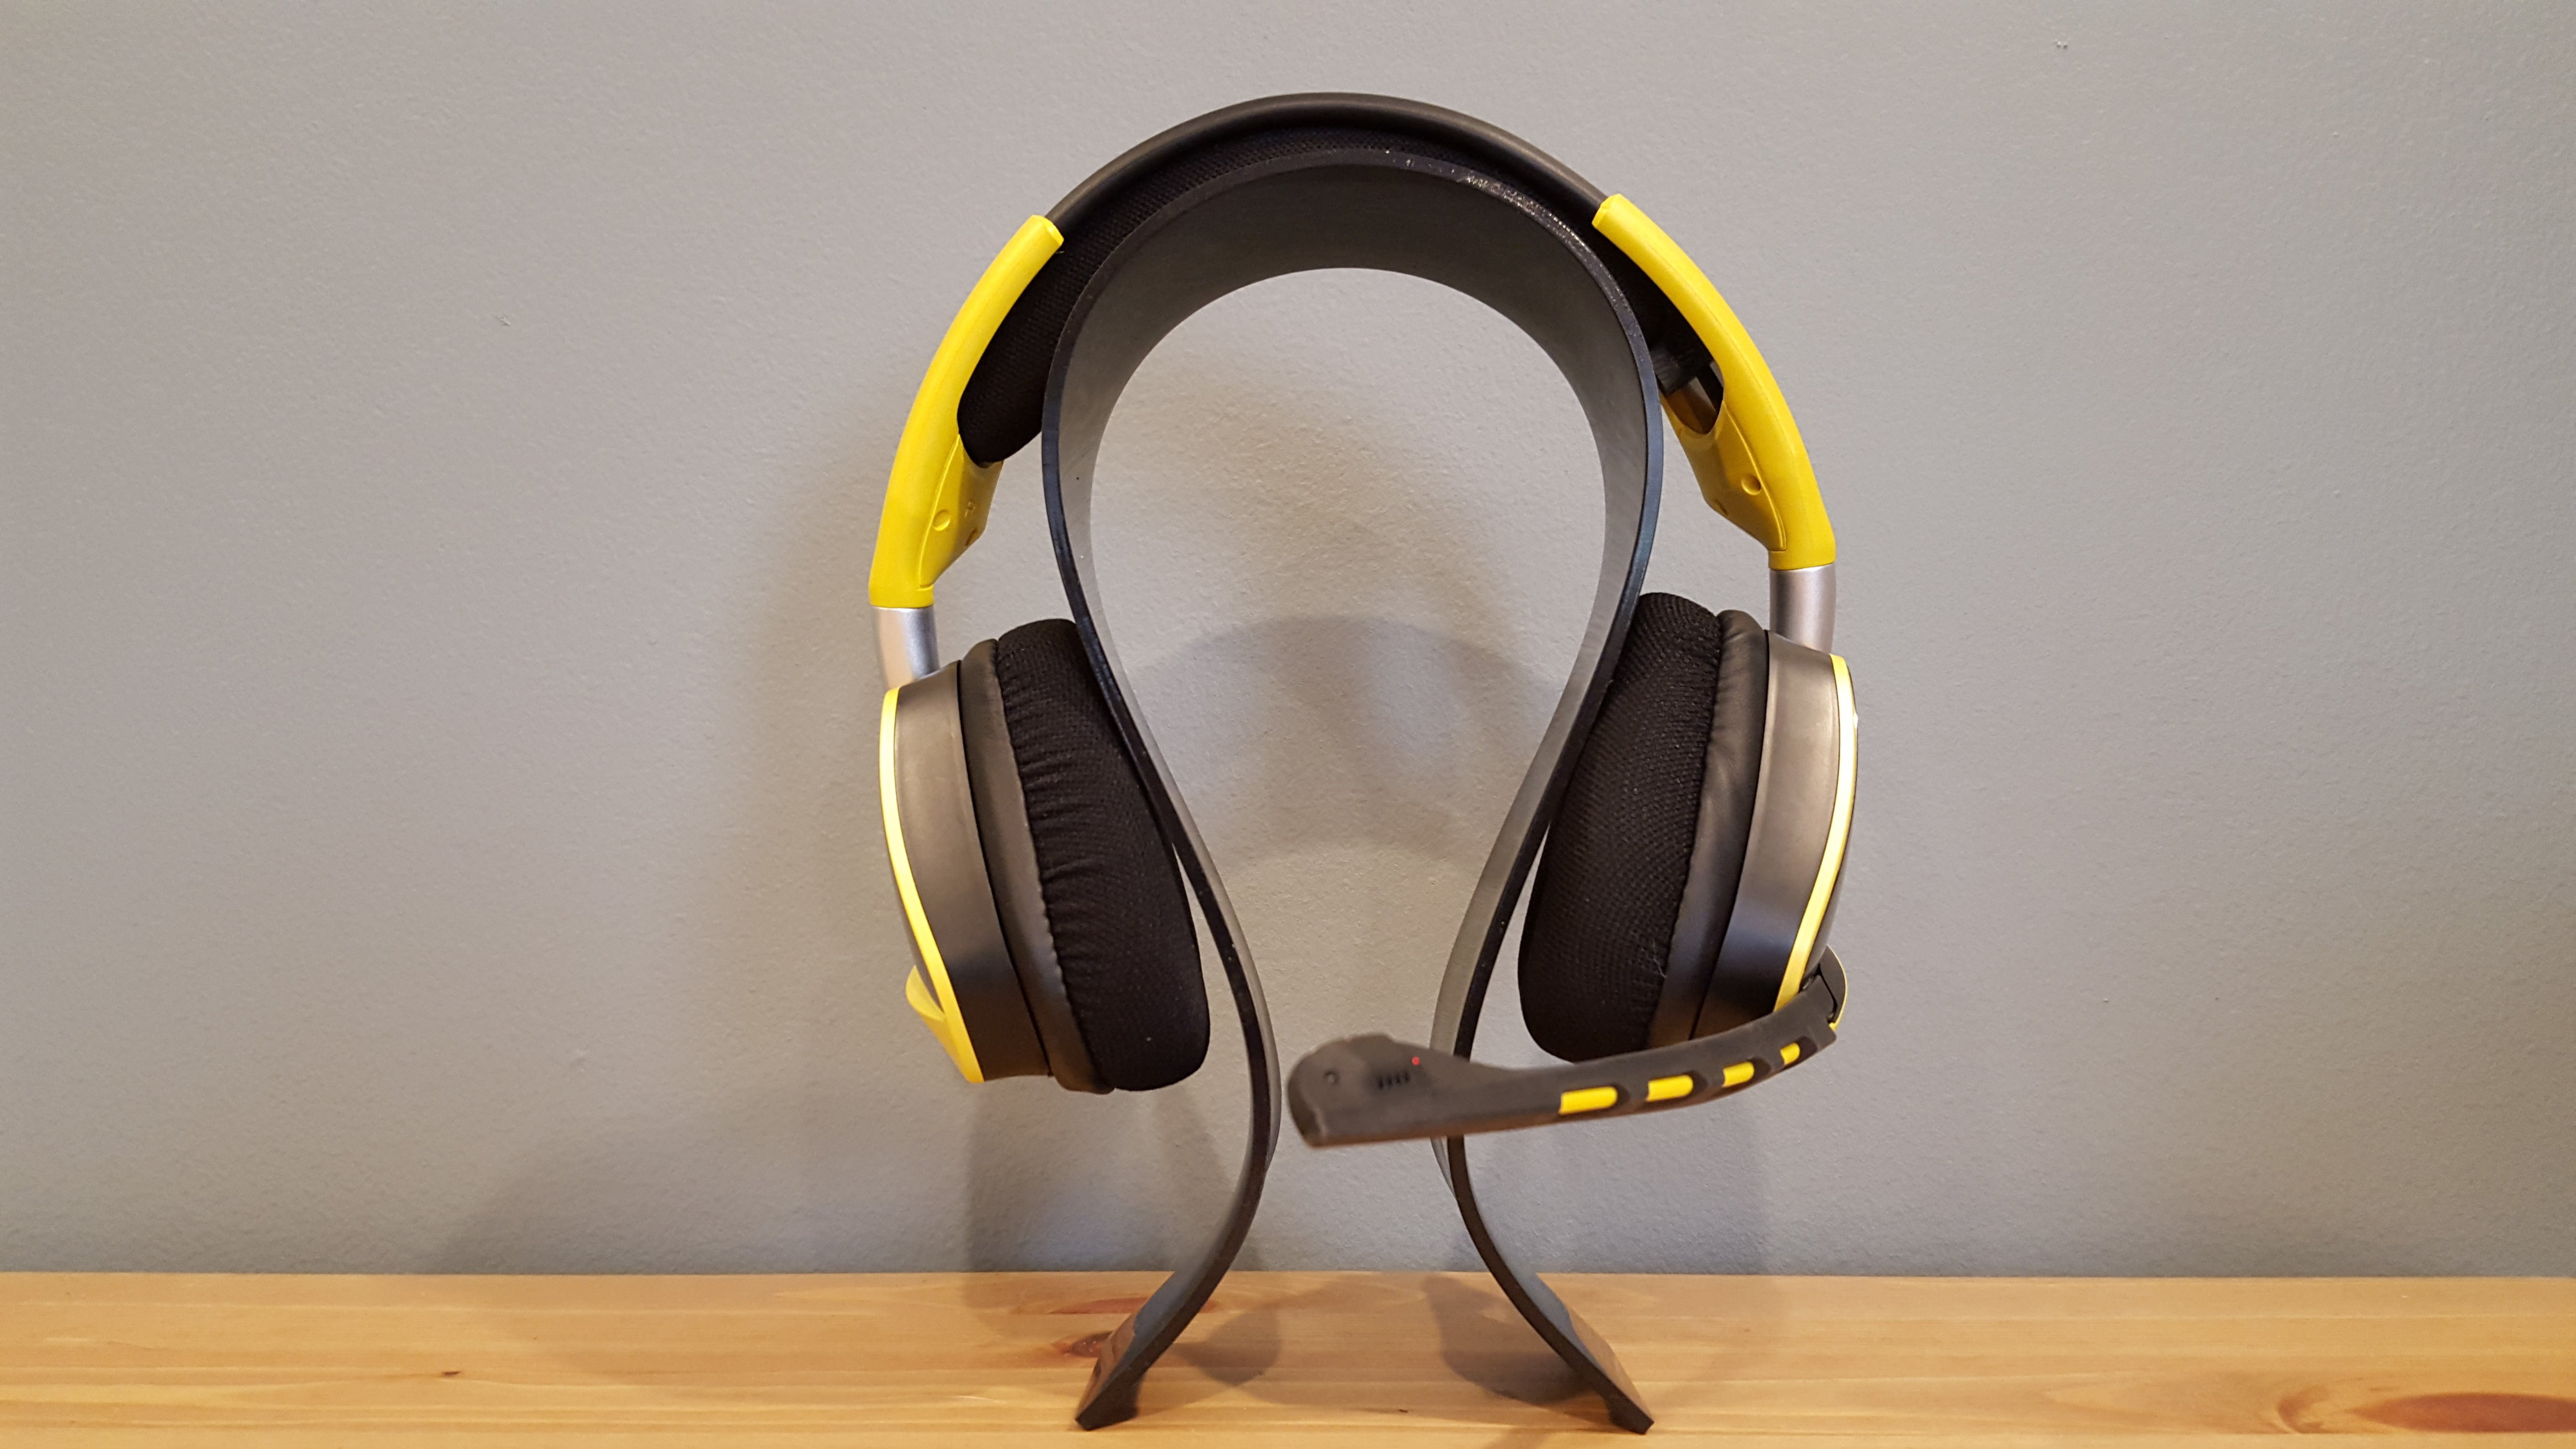 Corsair Void Wireless review: This headset is your best bet if you